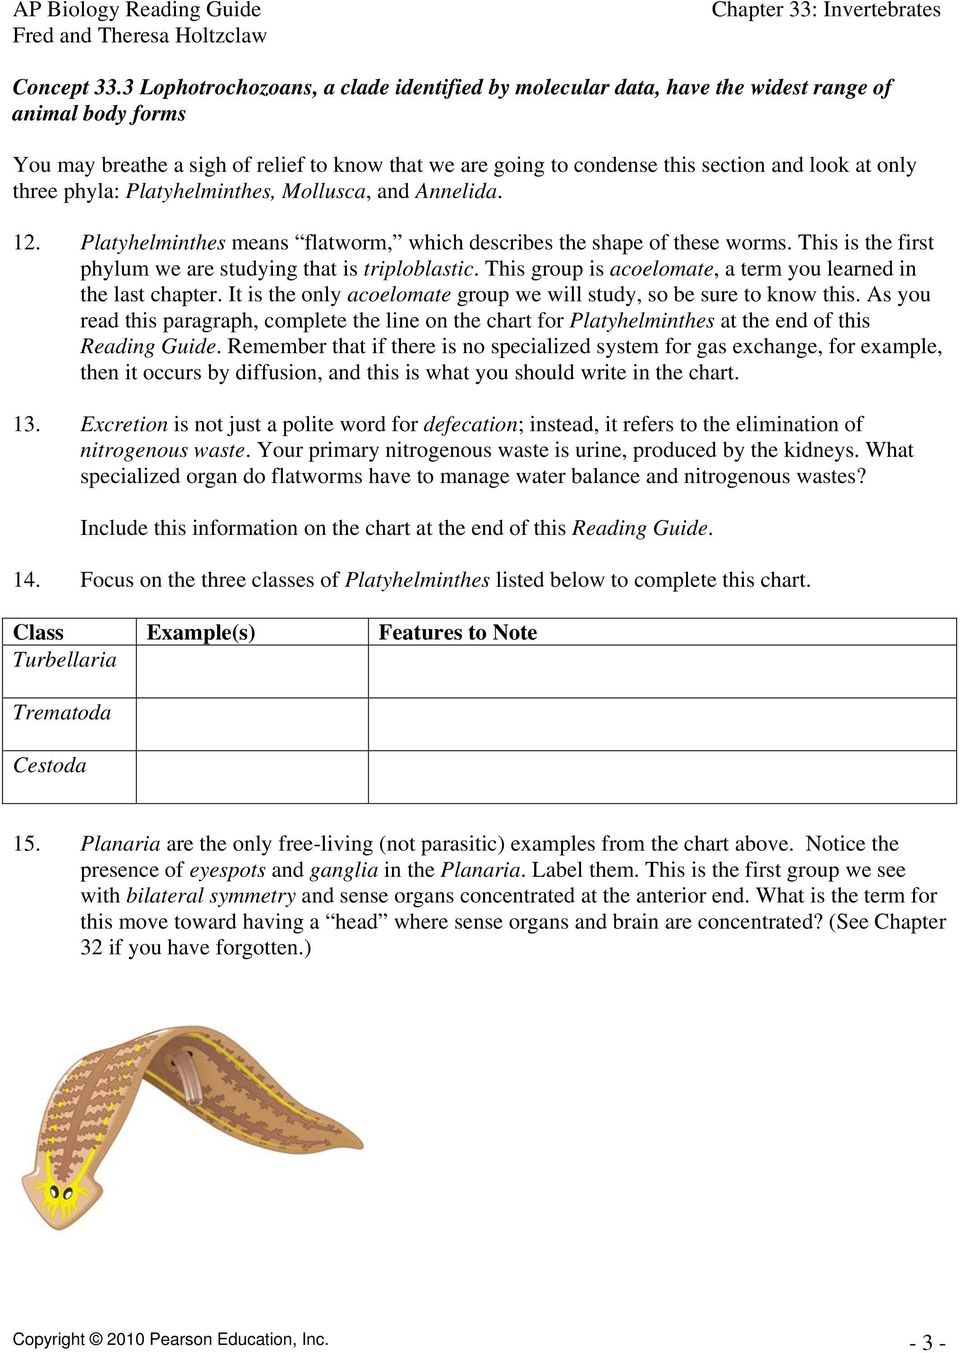 worksheet Table 3 Invertebrate Worksheet chapter 33 invertebrates pdf only three phyla platyhelminthes mollusca and annelida 12 means flatworm